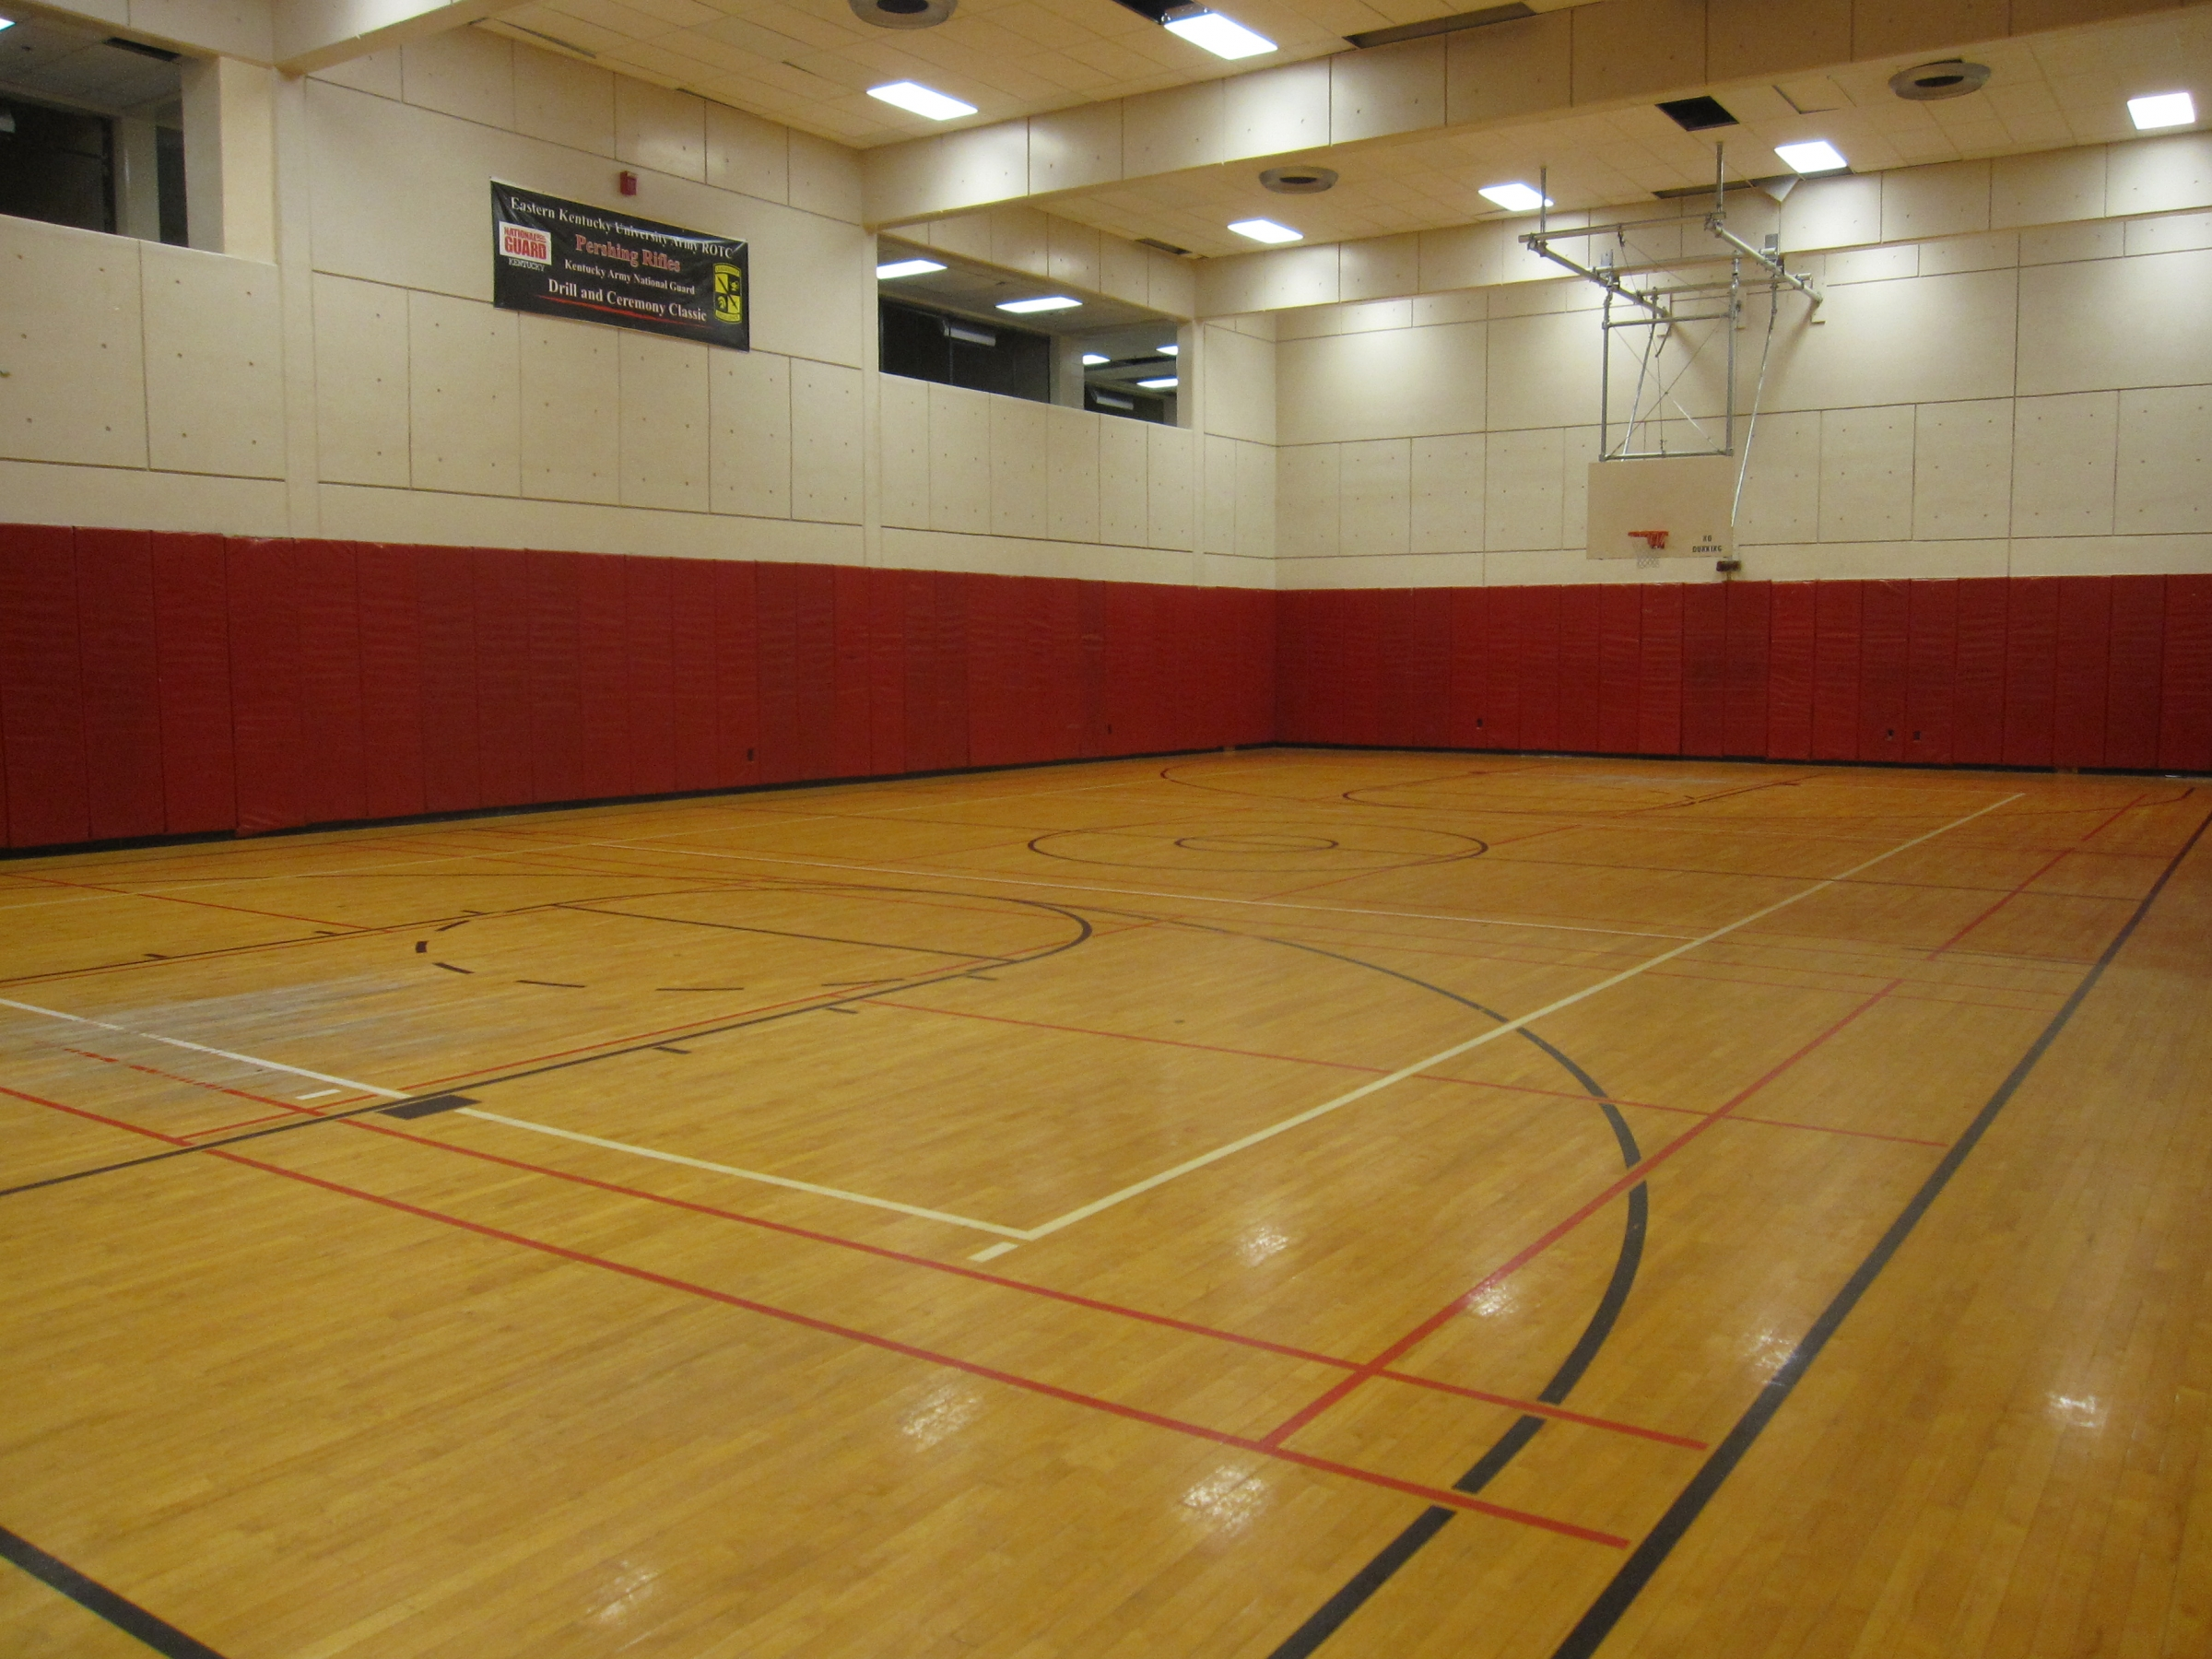 Facilities campus recreation eastern kentucky university for Indoor badminton court height